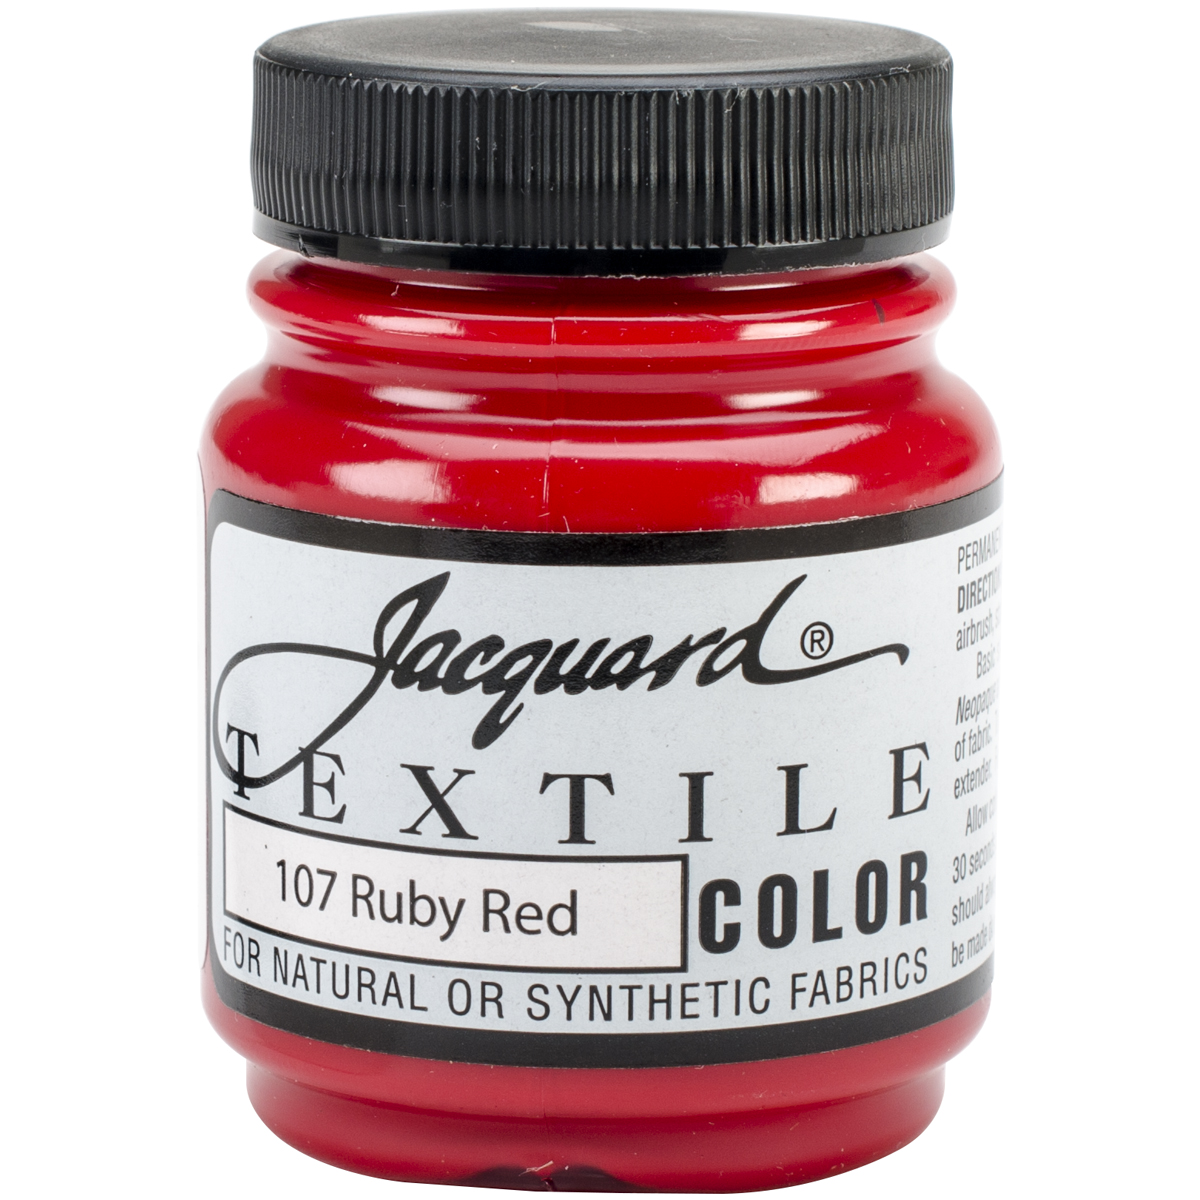 Jacquard Textile Color Fabric Paint 2.25oz-Ruby Red